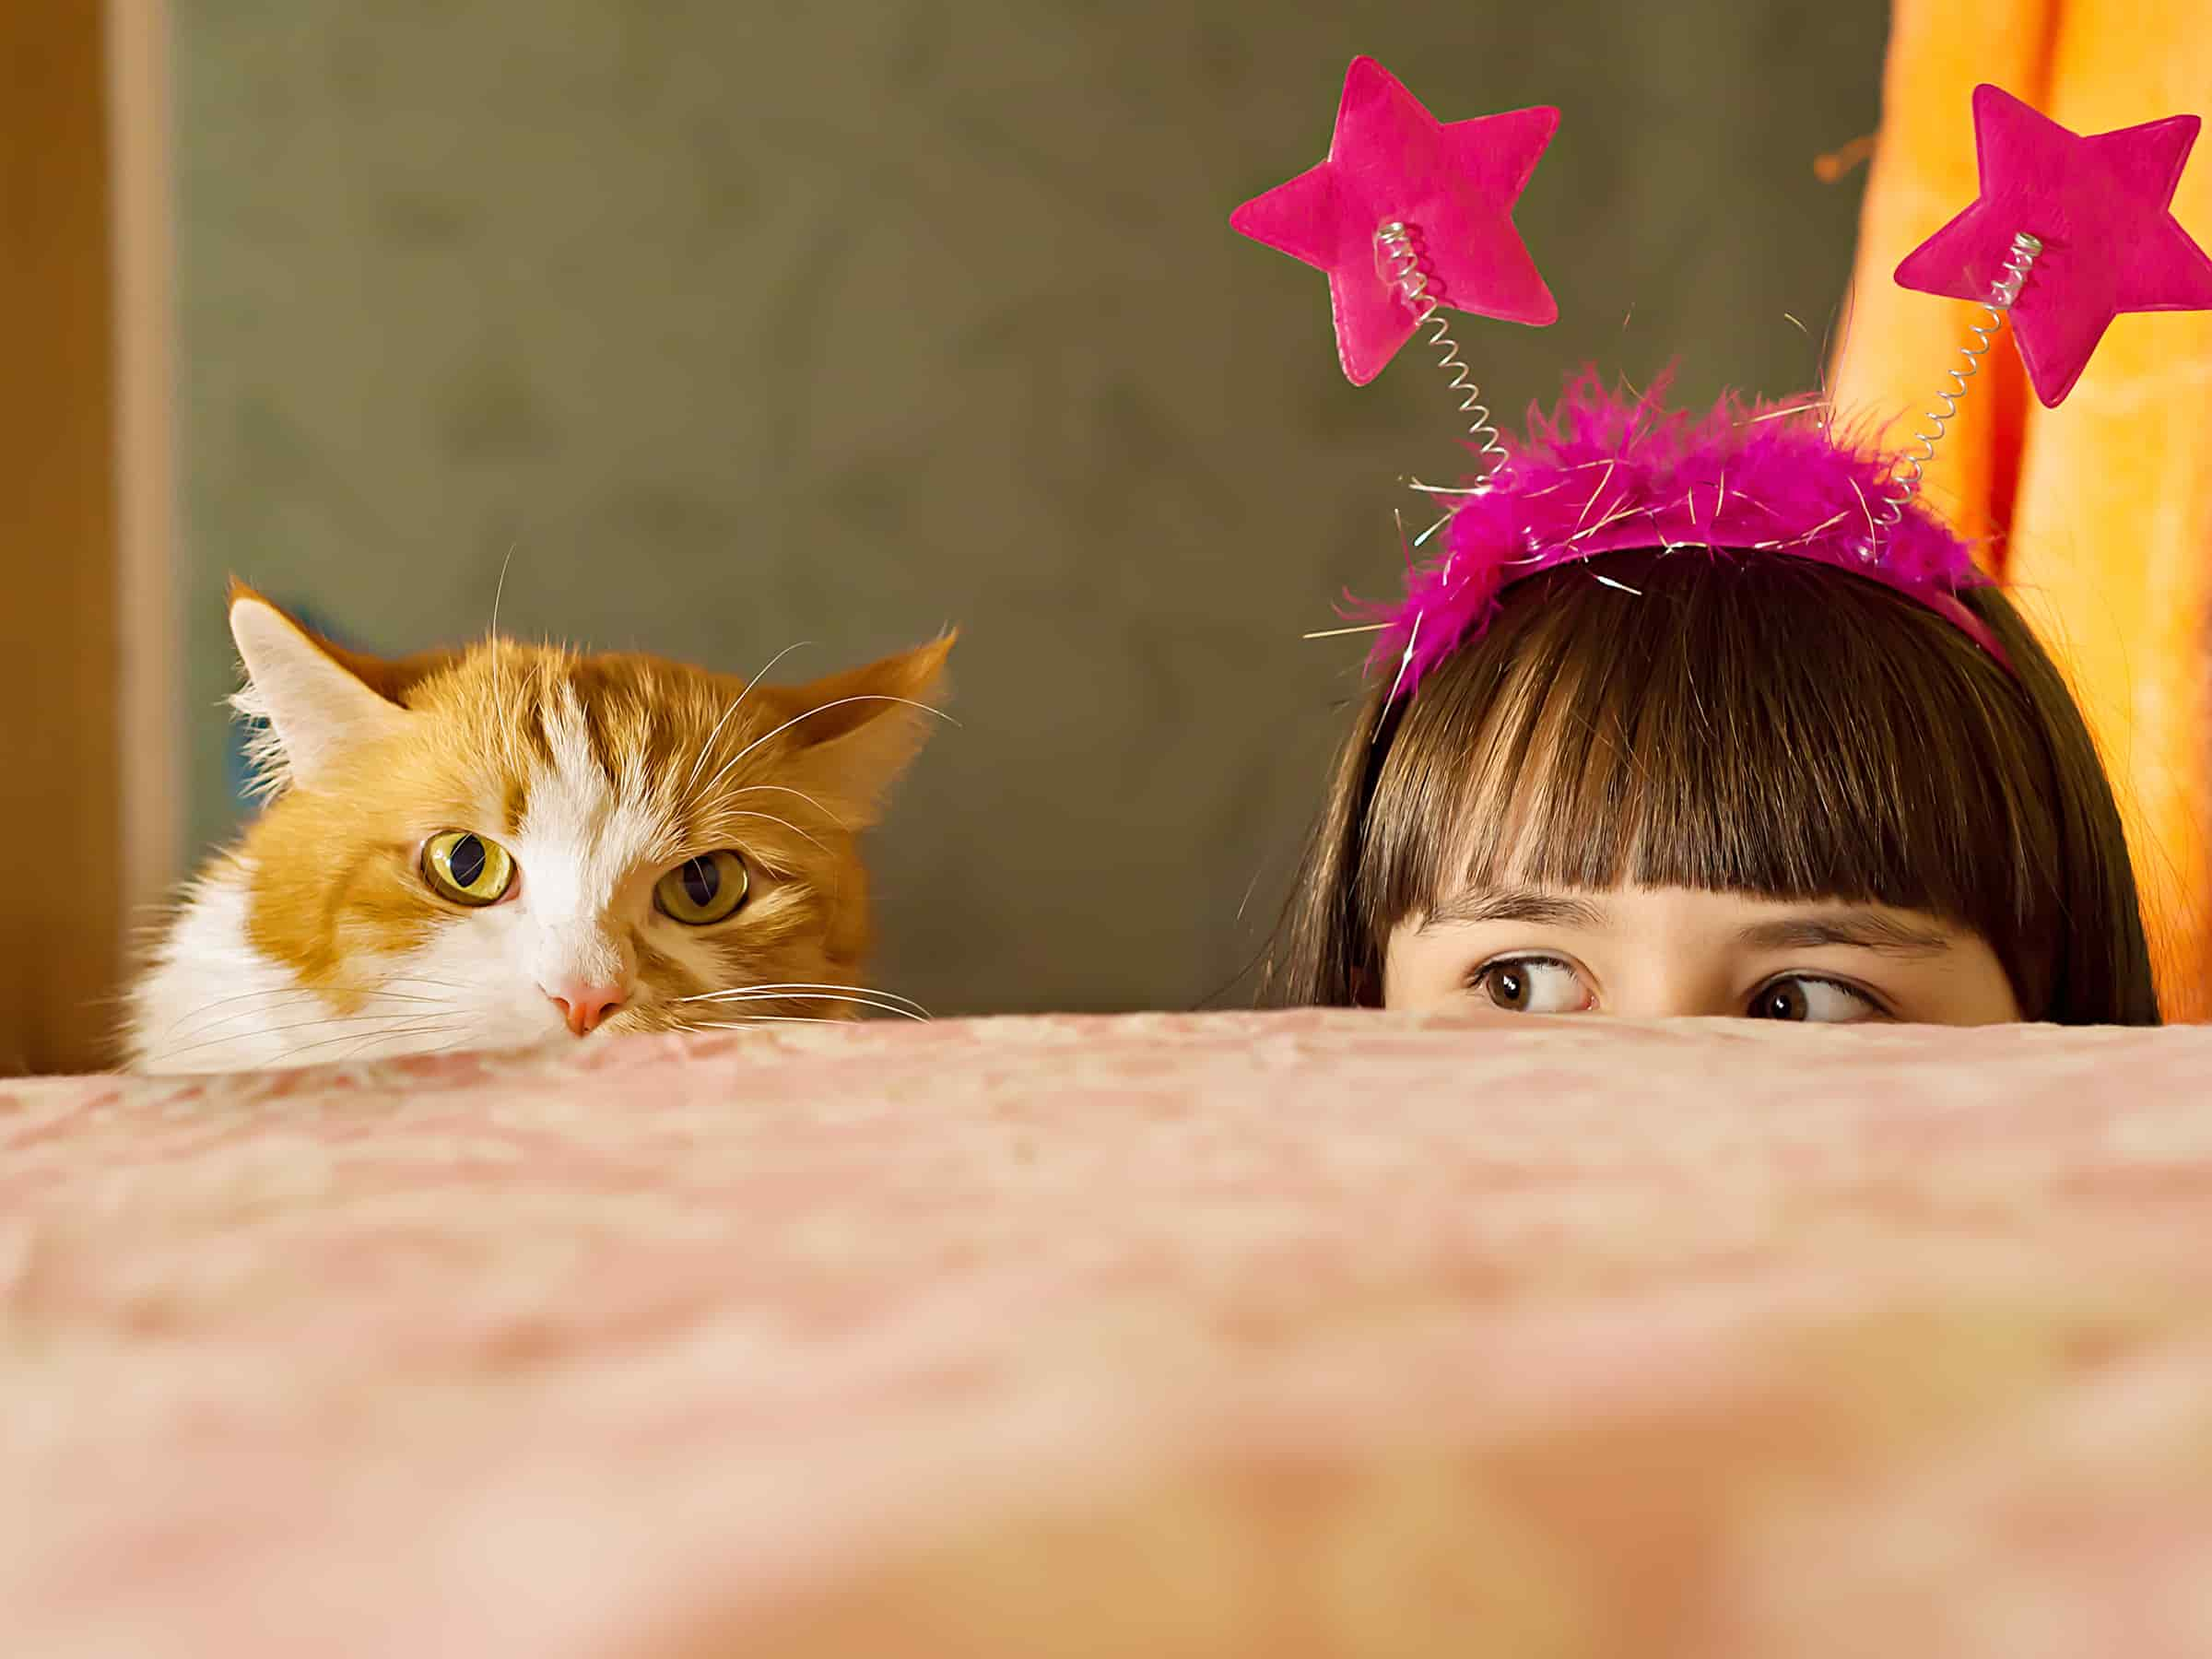 Special Species For Special Kids: A Tale of Cats and Autistic Children